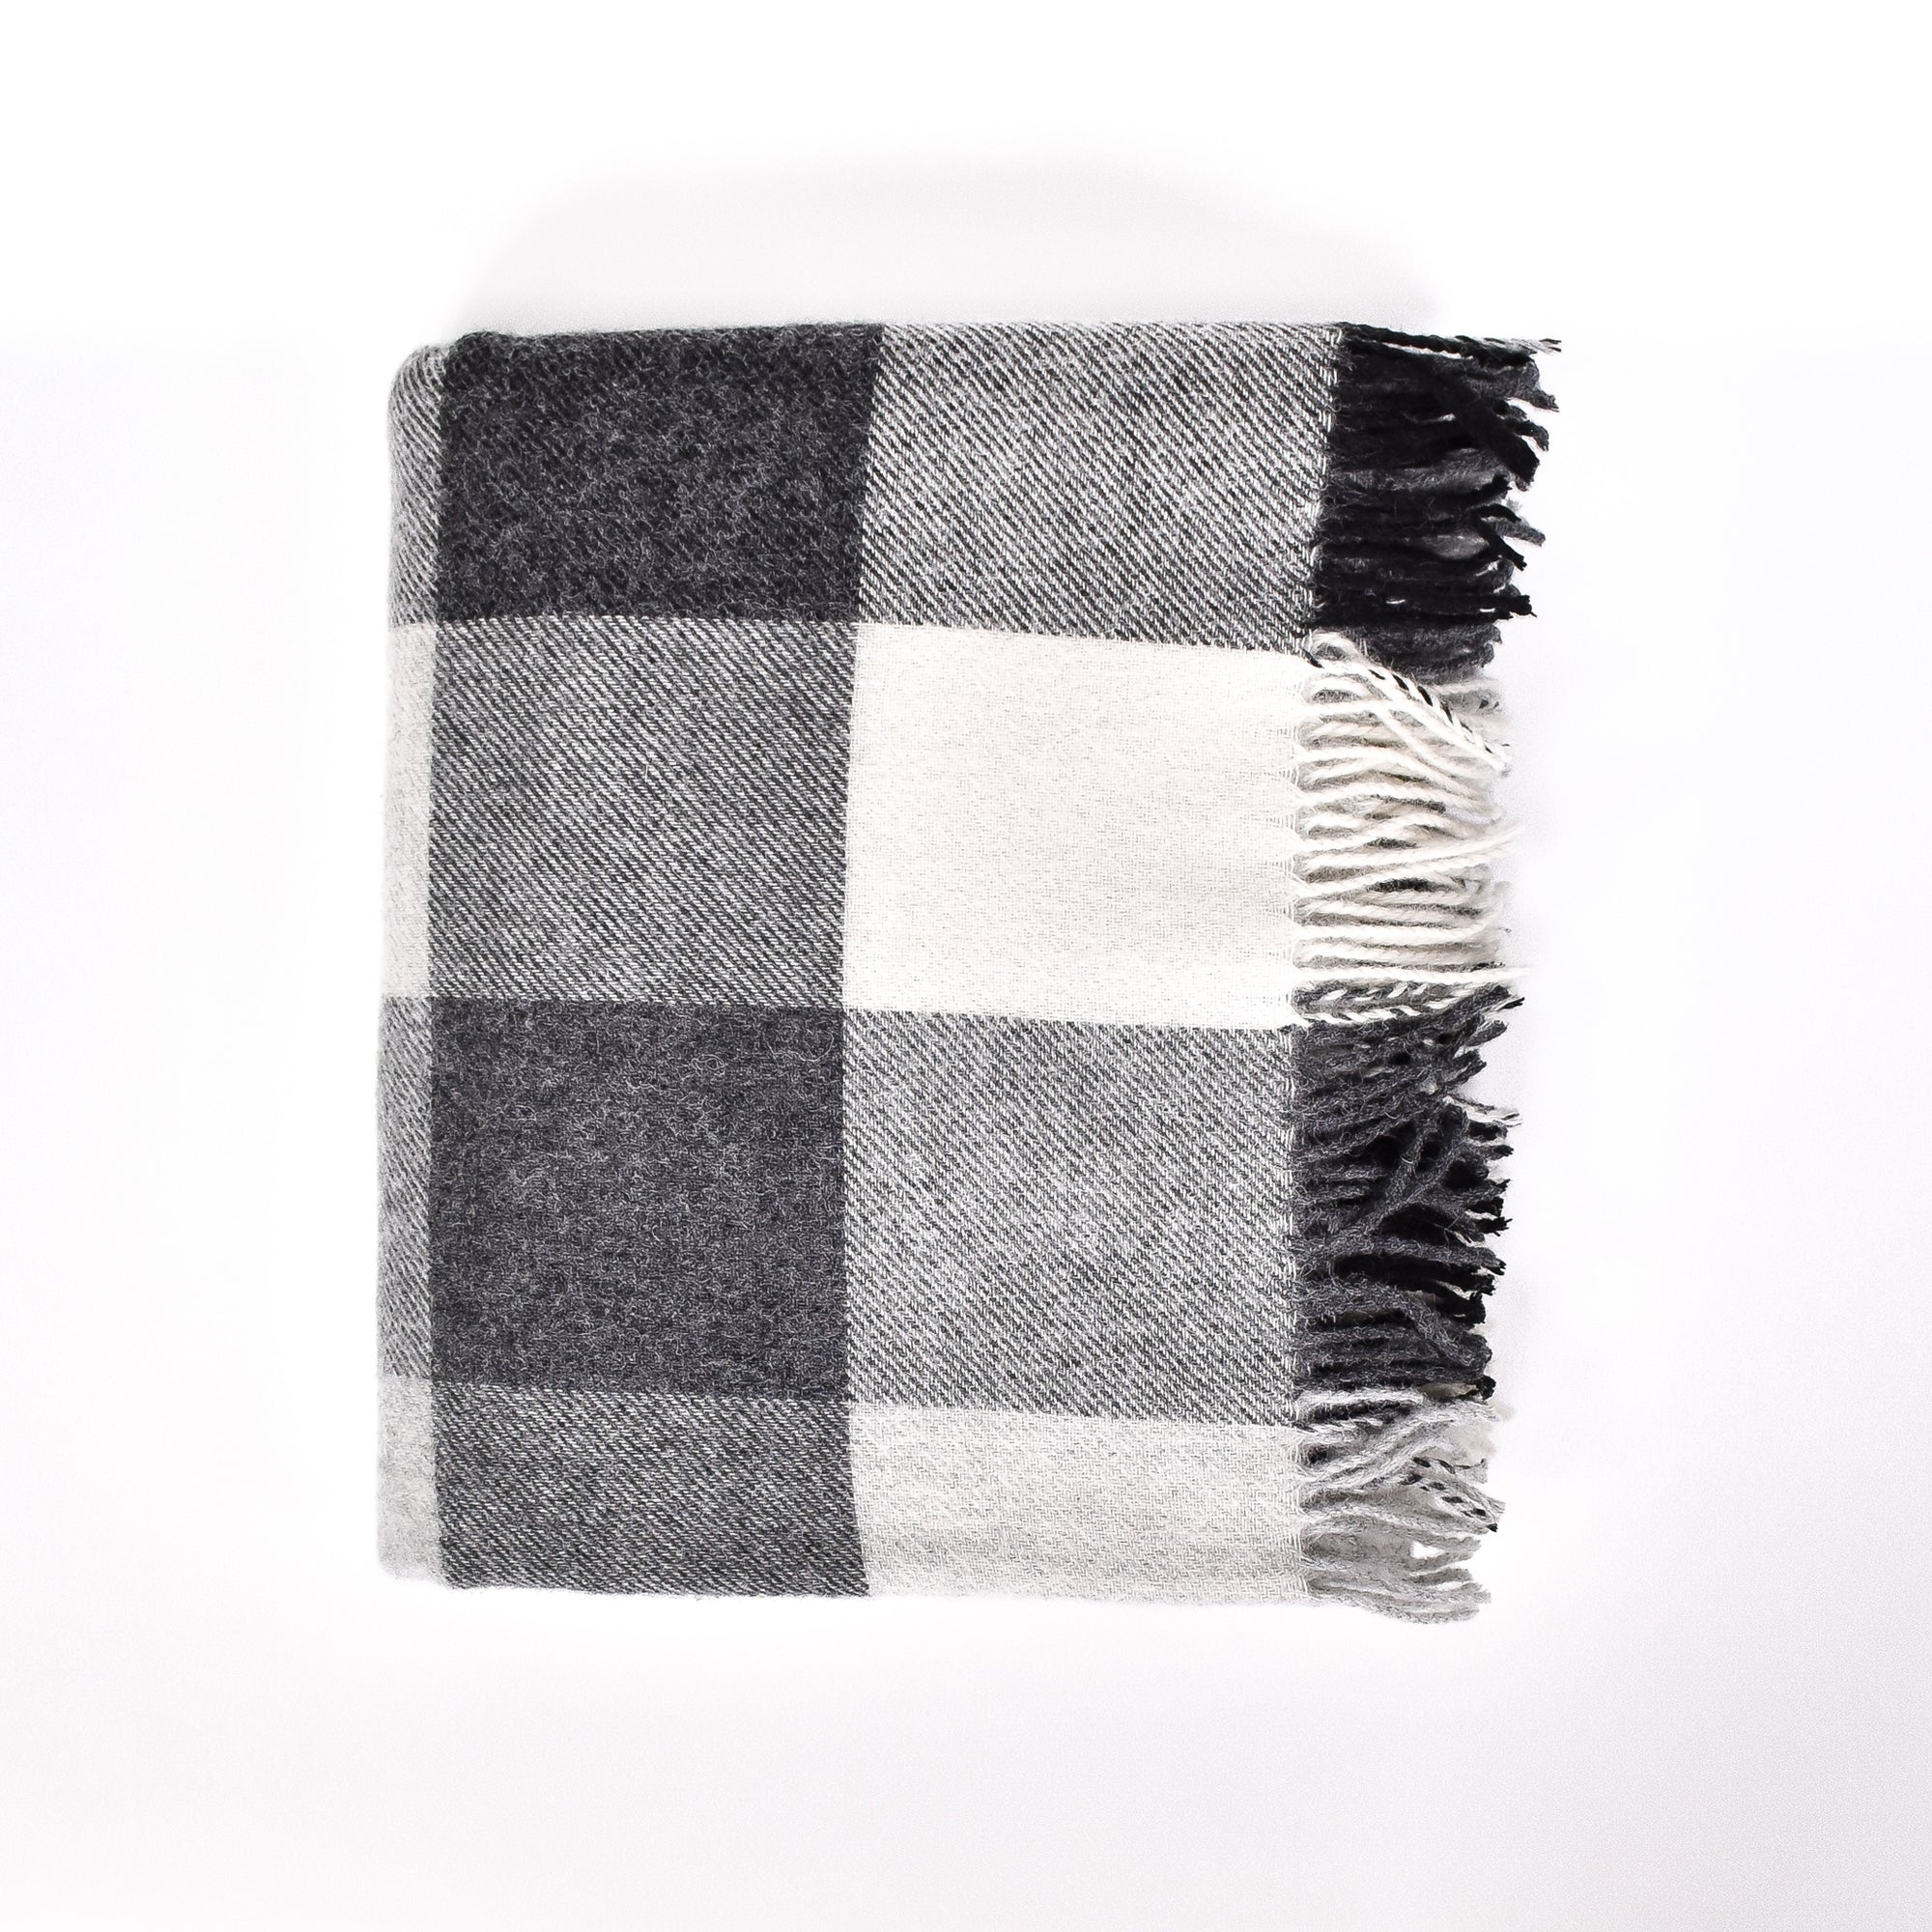 The Ash Wool Blanket - Rug & Weave